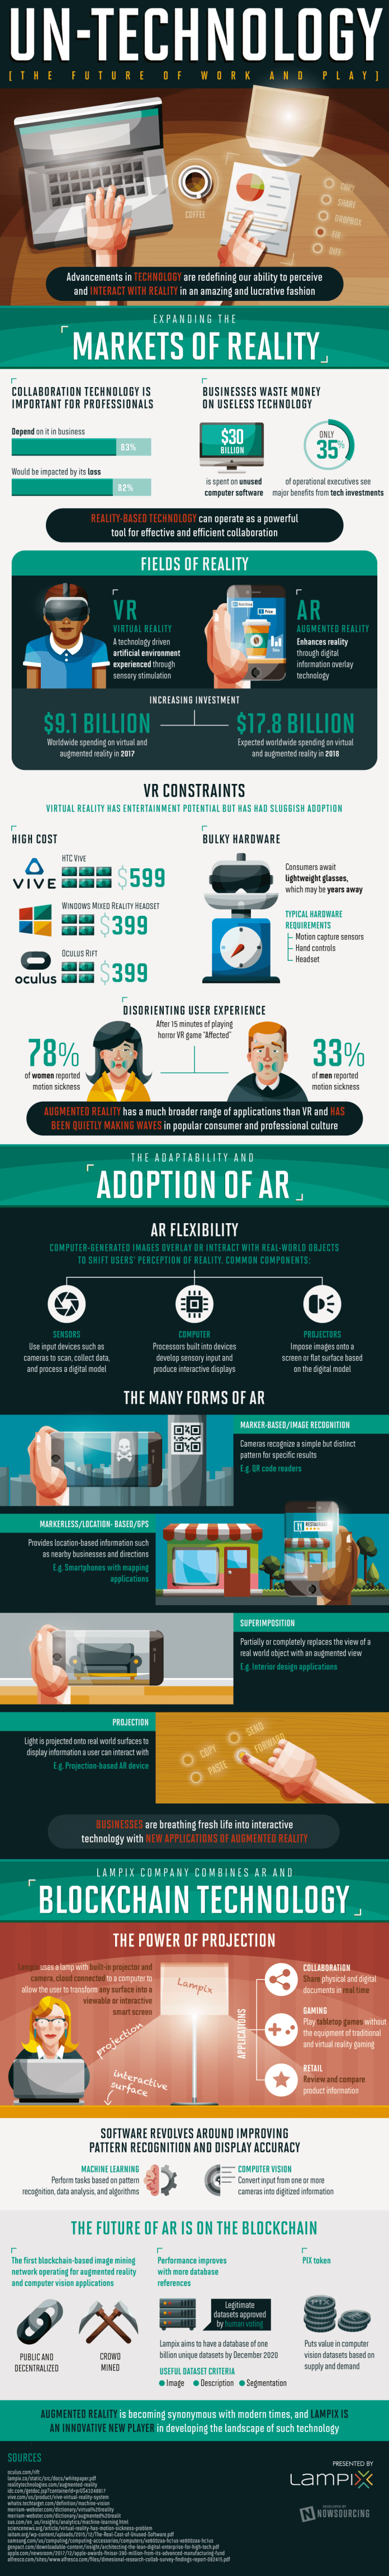 Augmented Reality And The Future Of Un-Technology 2